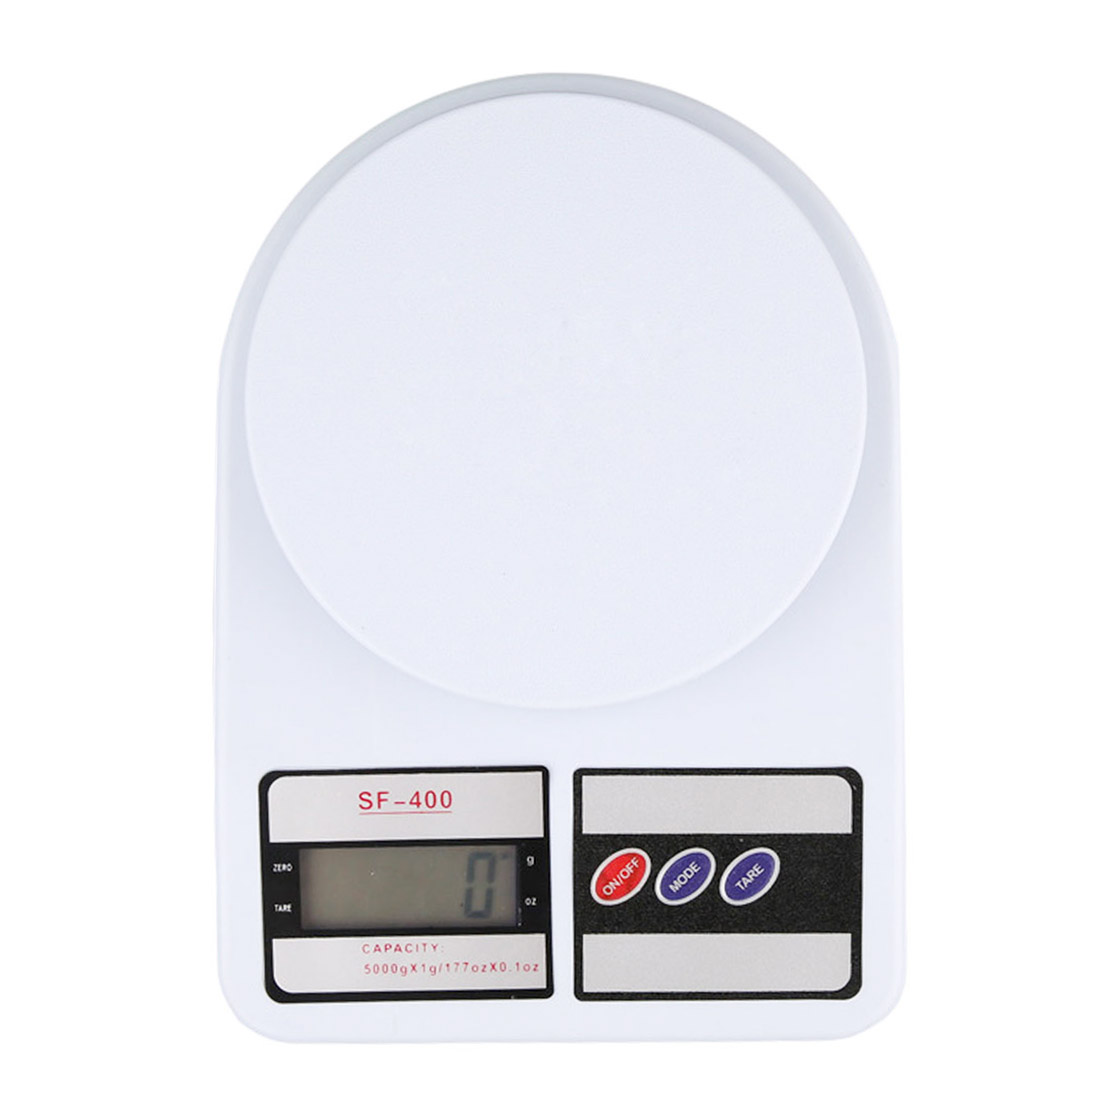 Precise Kichen Electronic Scale 5/10kg 1g LCD Display Electronic Bench Weight Scale Kitchen Cooking Measure Tools Food Balance